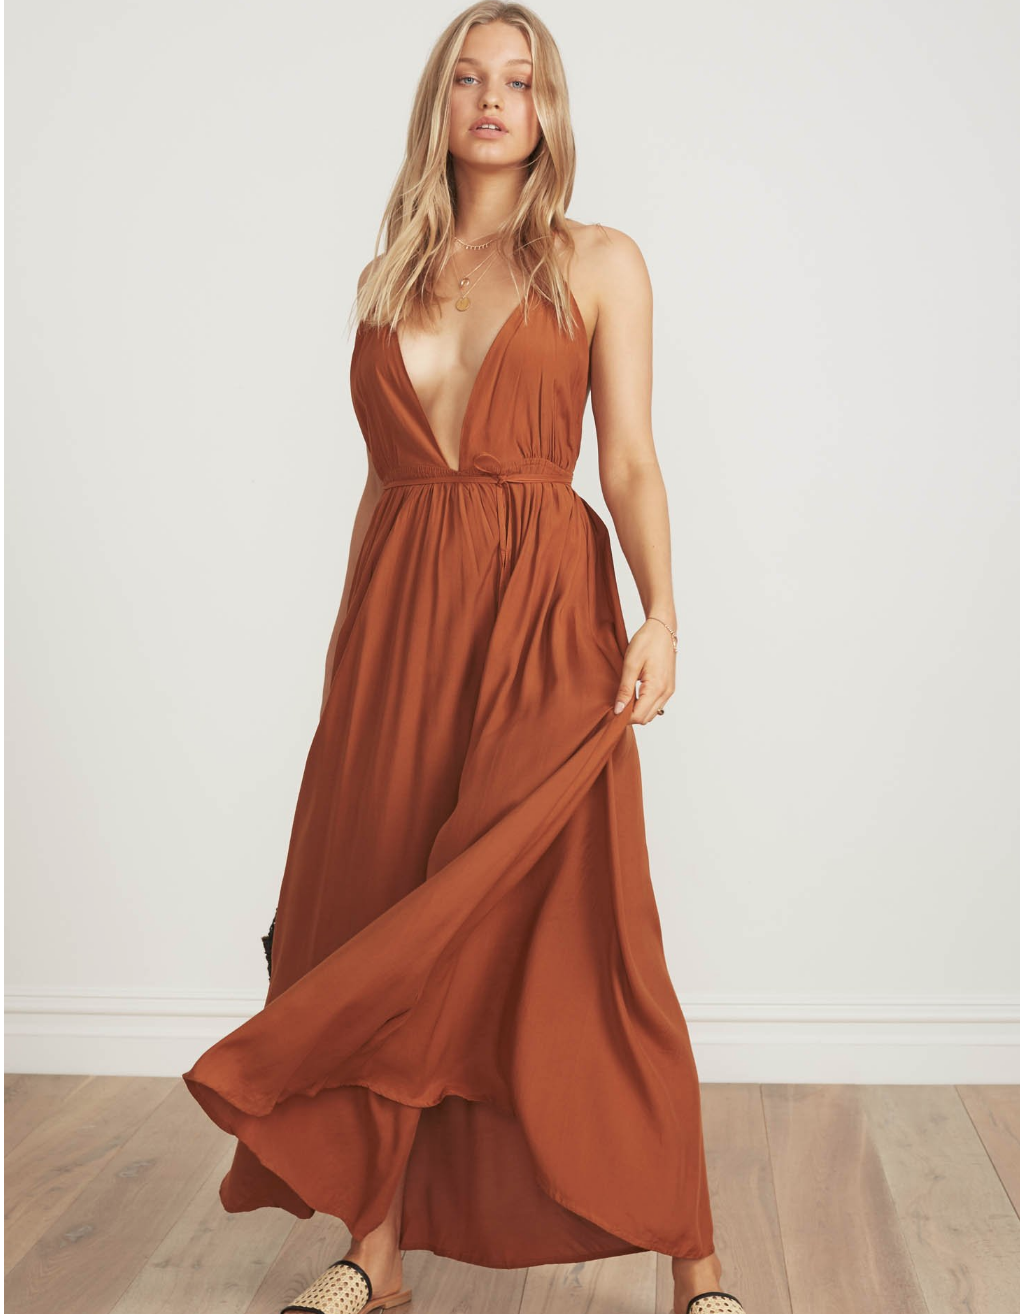 FAITHFULL THE BRAND SANTA ROSA MAXI IN PLAIN BURNT SIENNA